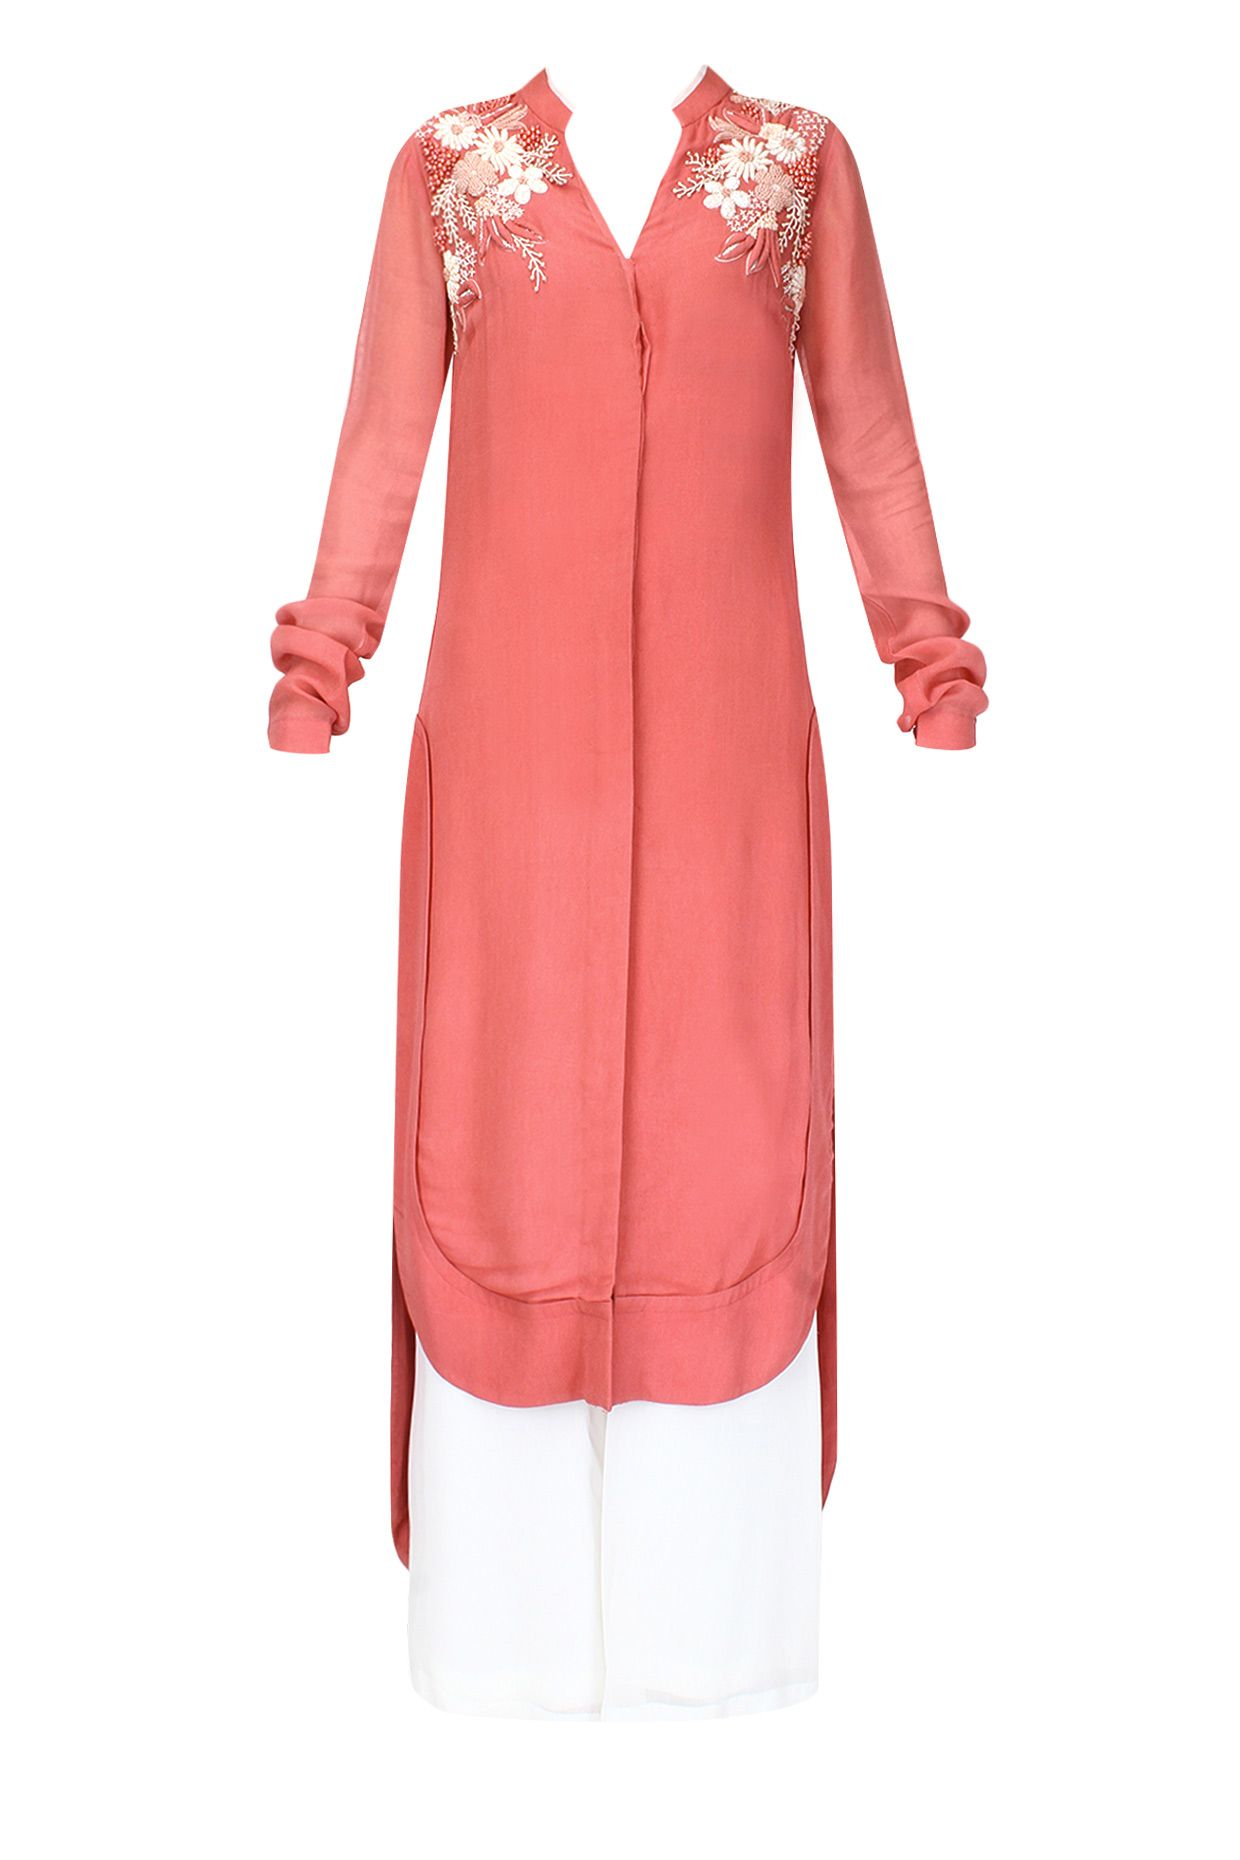 Simple styled tunic with embroidery around neck, leather